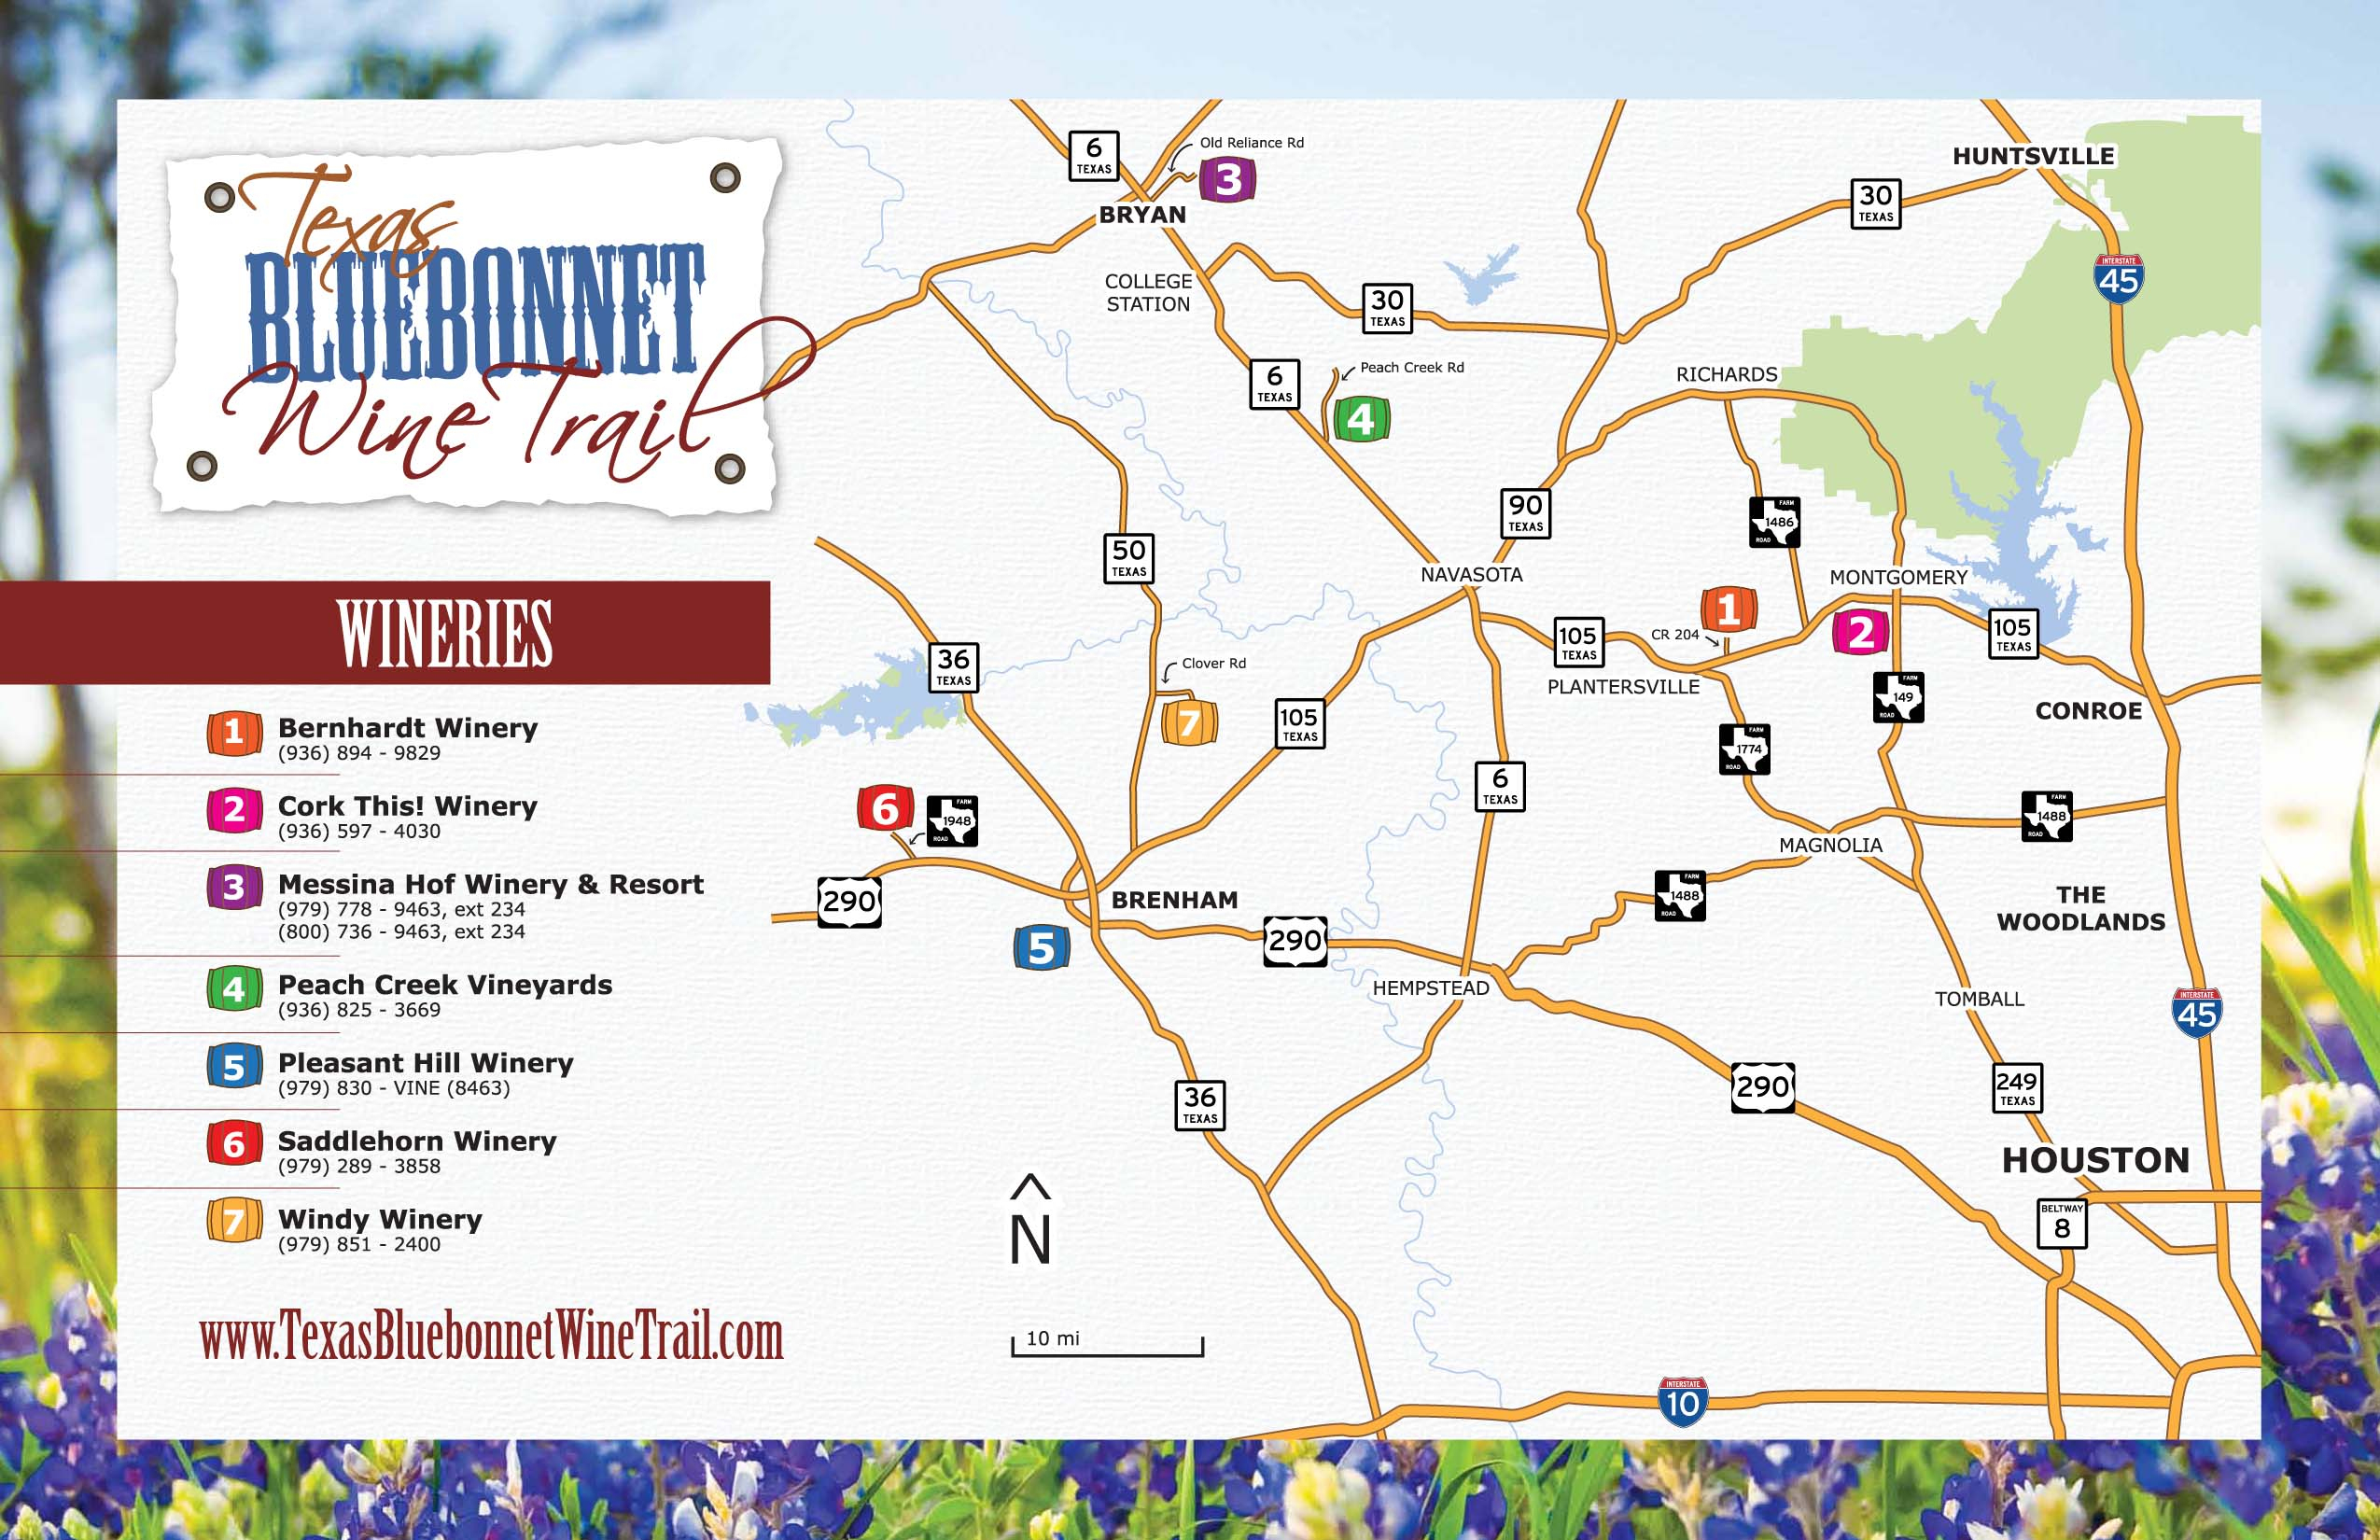 Texas Winery Map | Business Ideas 2013 - Texas Wine Trail Map